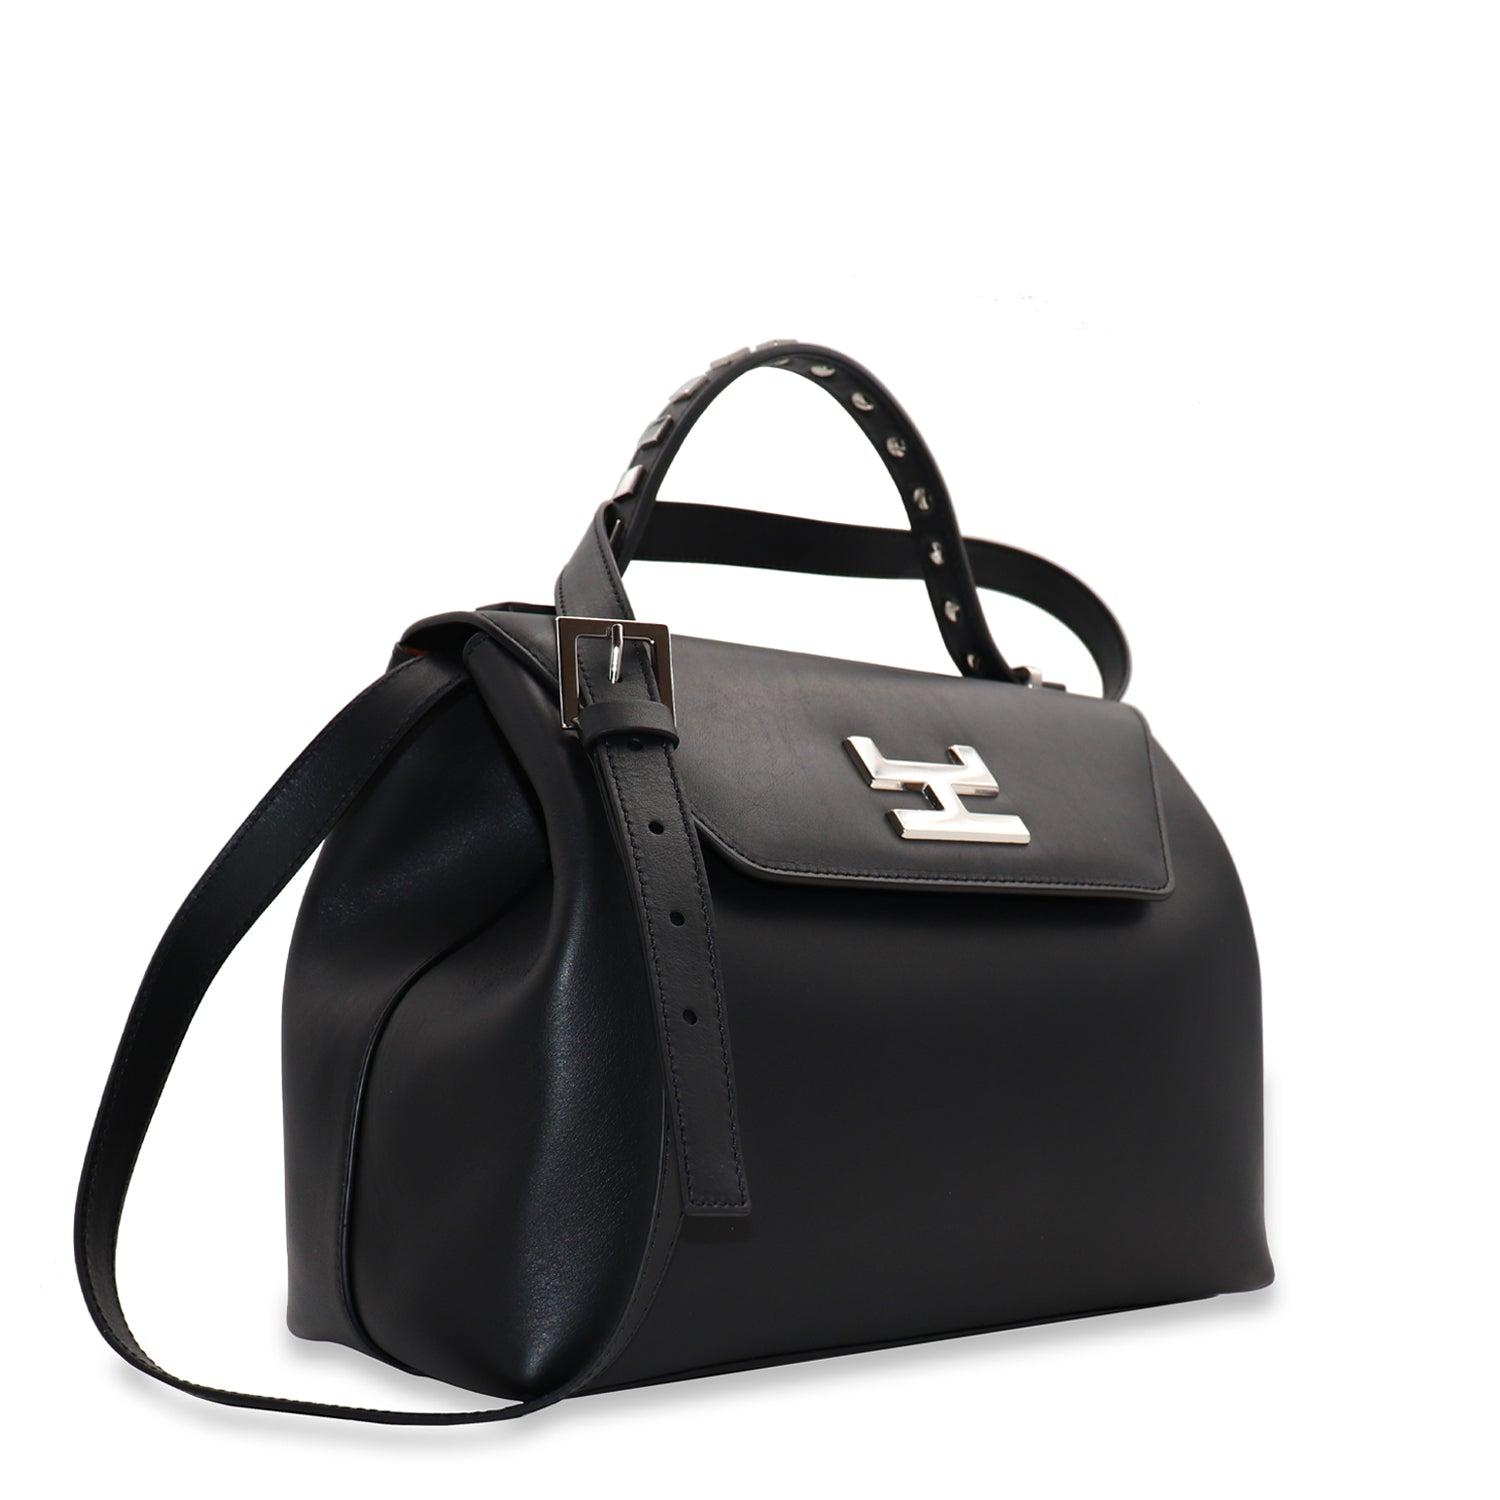 CANIE SMALL BLACK CALFSKIN LEATHER TOP HANDLE BAG